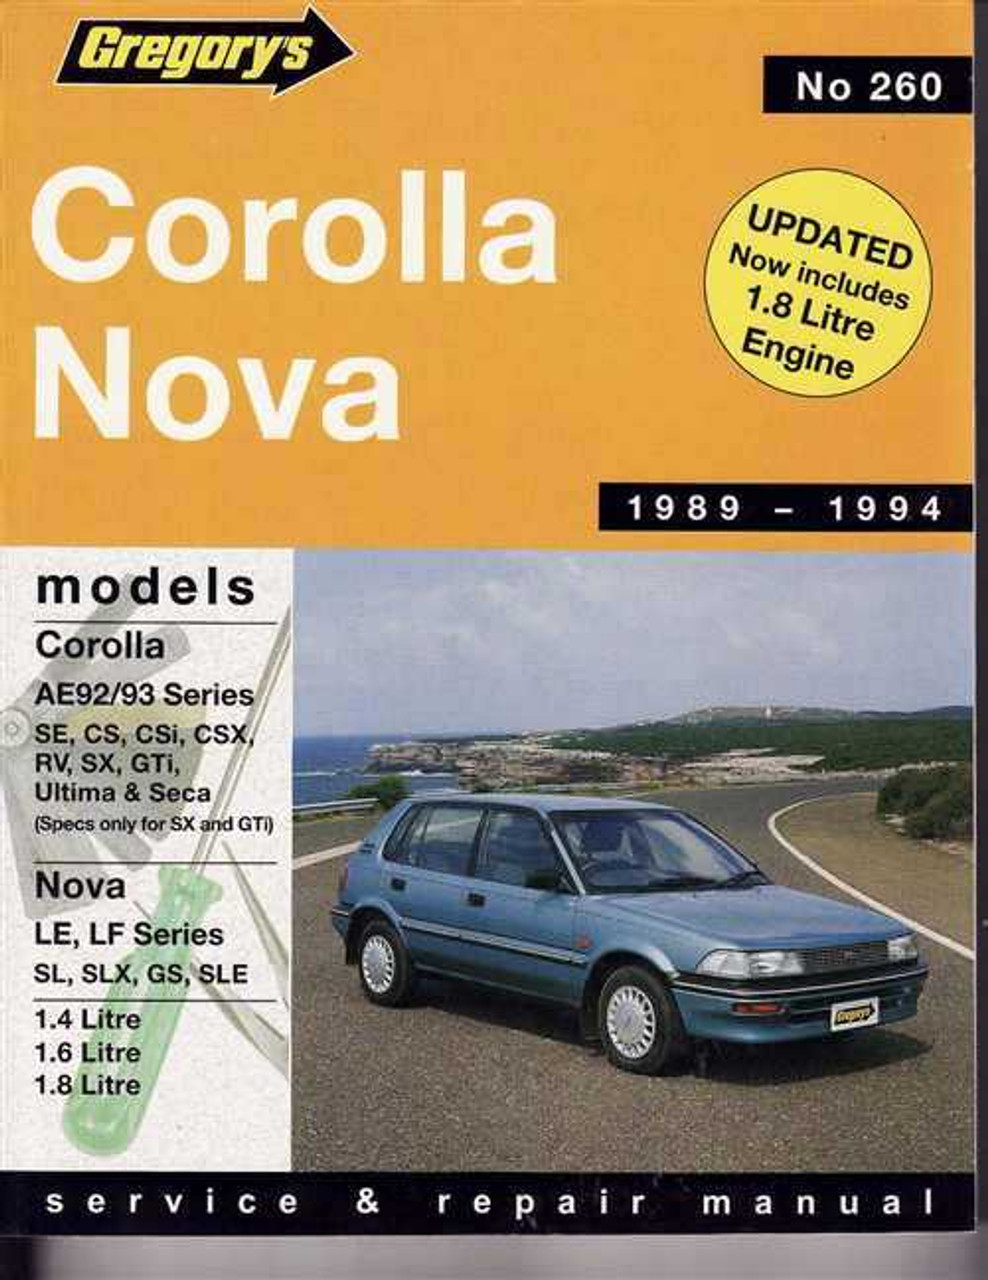 1986 toyota corolla workshop manual best setting instruction guide u2022 rh ourk9 co 1986 toyota corolla owners manual 1986 toyota corolla manual steering rack